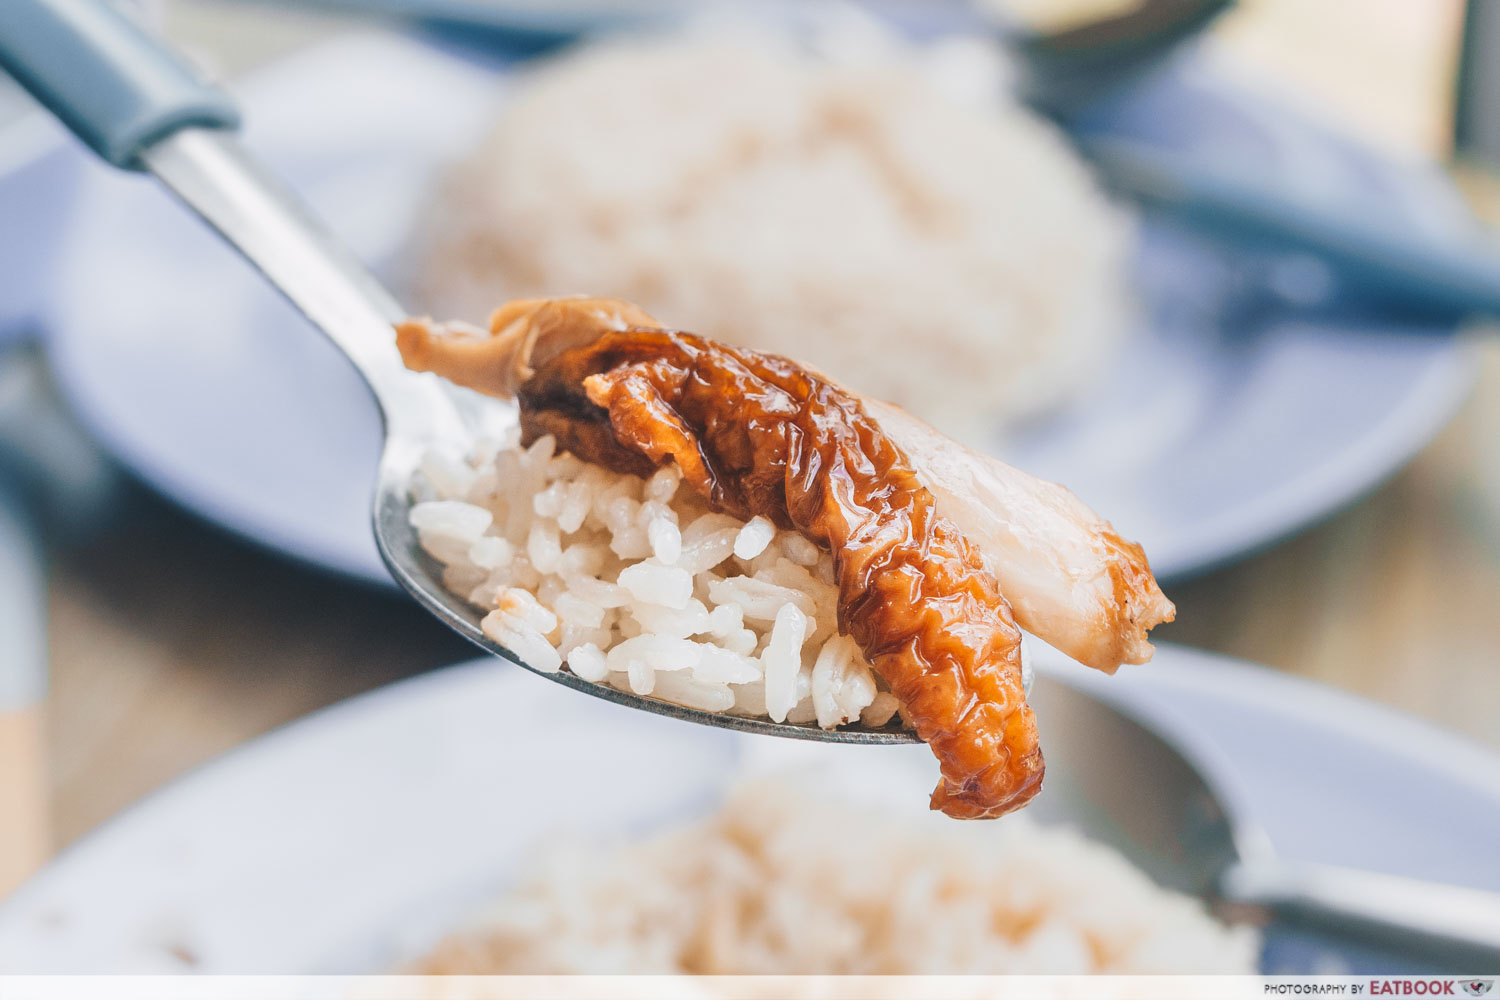 Le Da Chicken Rice - piece of roasted chicken and rice